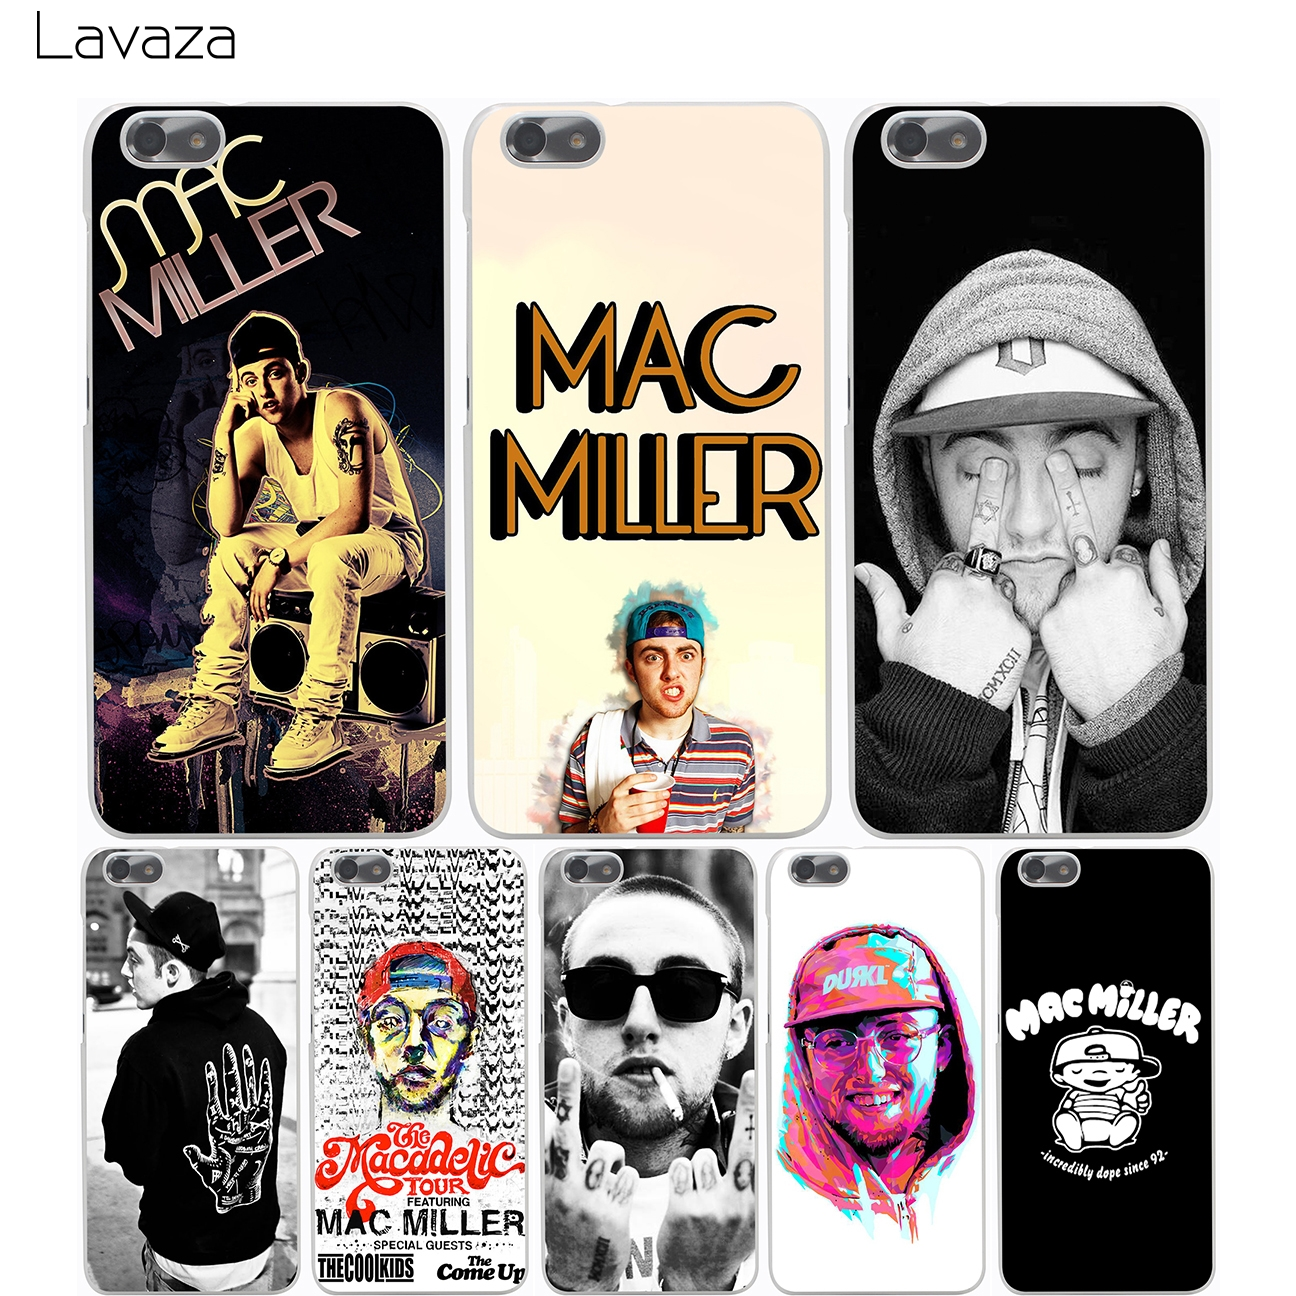 Lavaza Mac Miller Case for Huawei Honor 6a 7x 8 9 P8 P9 P10 P20 P Smart Mate 10 Lite Pro Mini 2017 ...